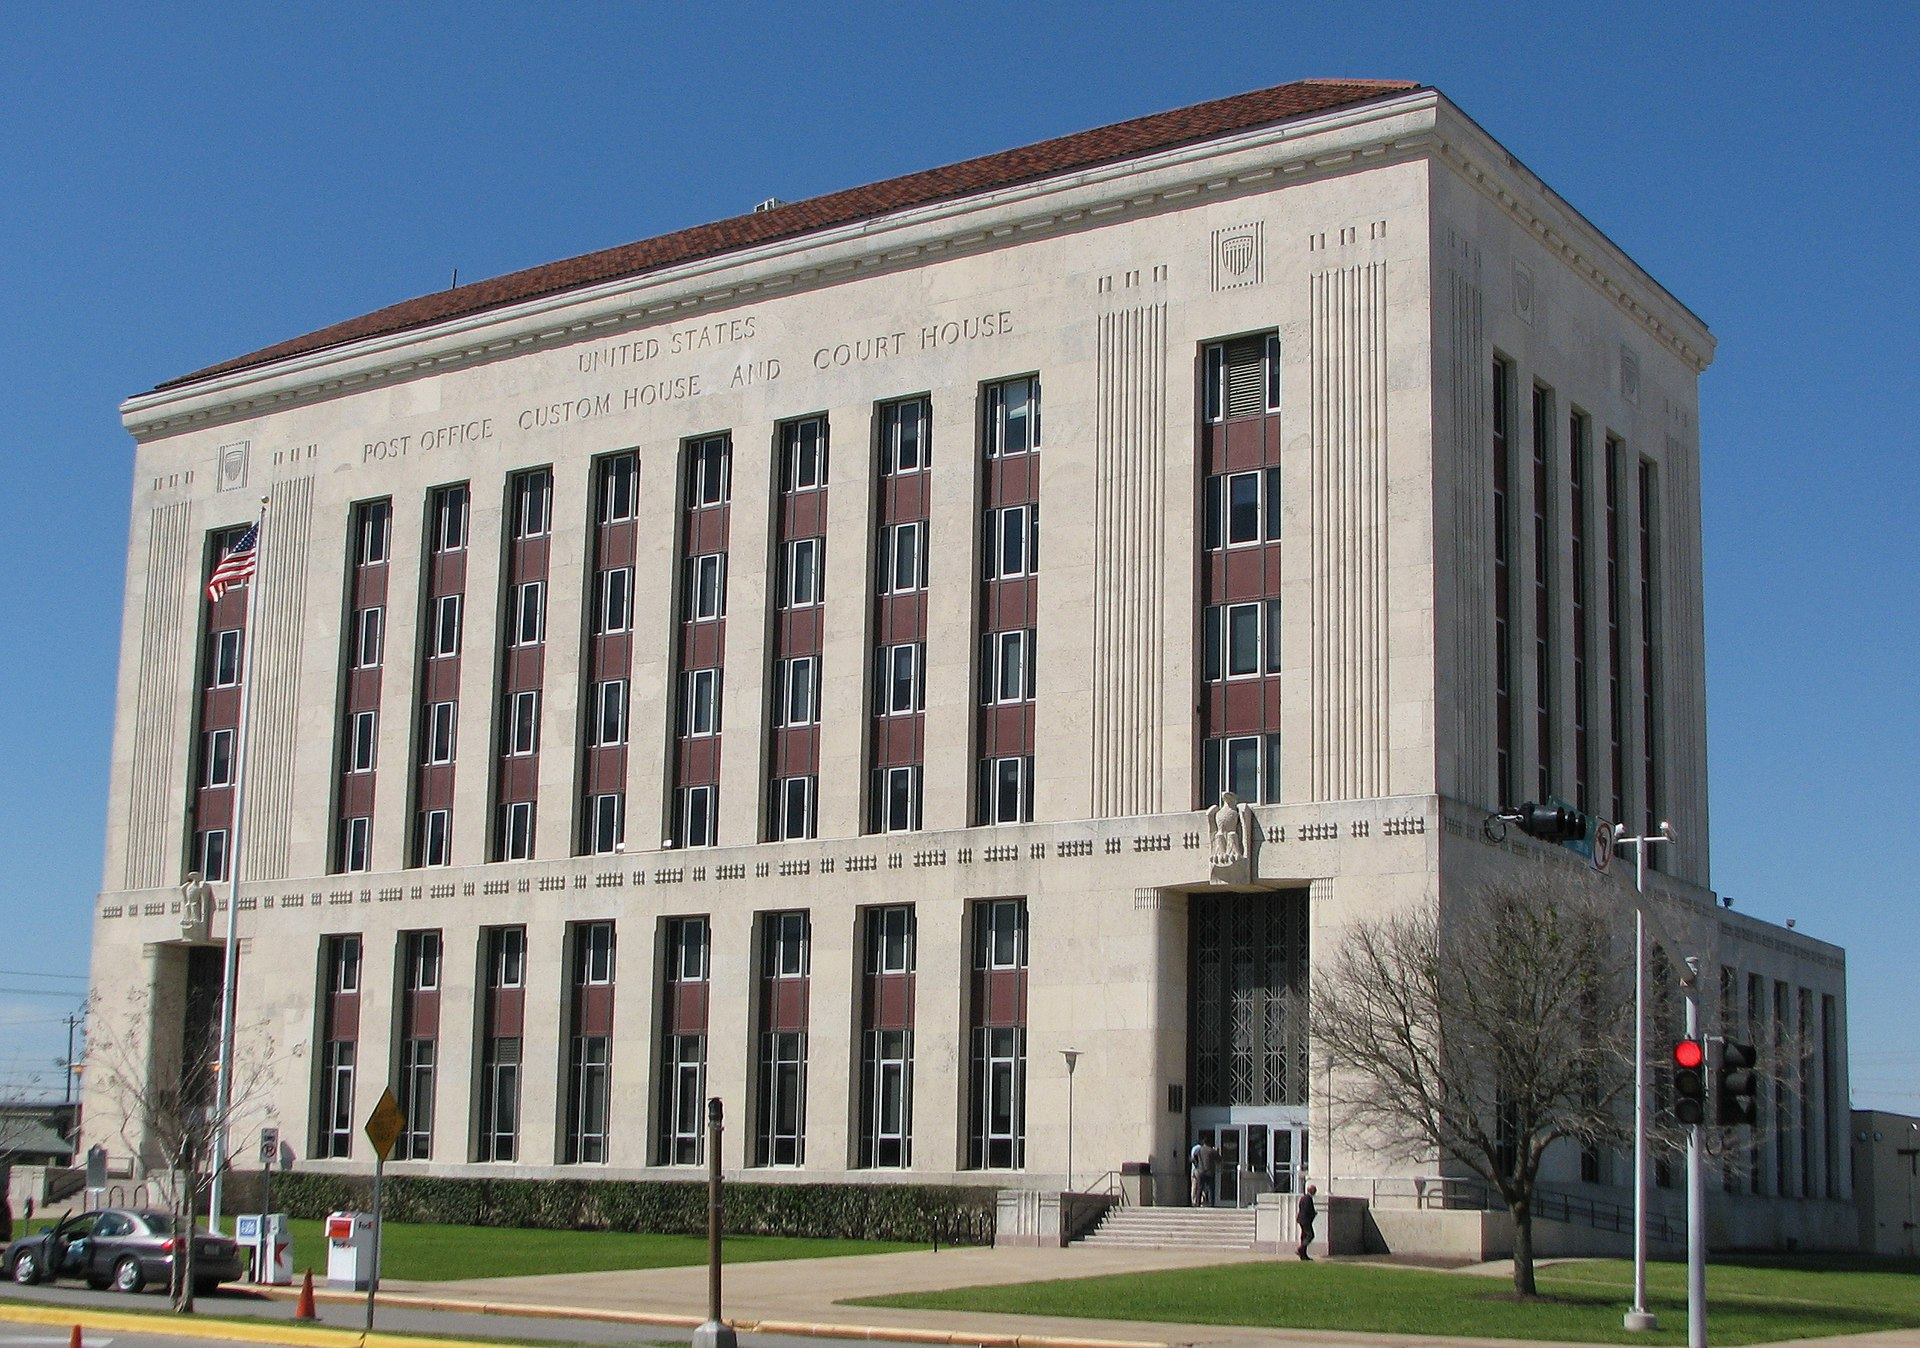 Galveston United States Post Office and Courthouse - Wikipedia